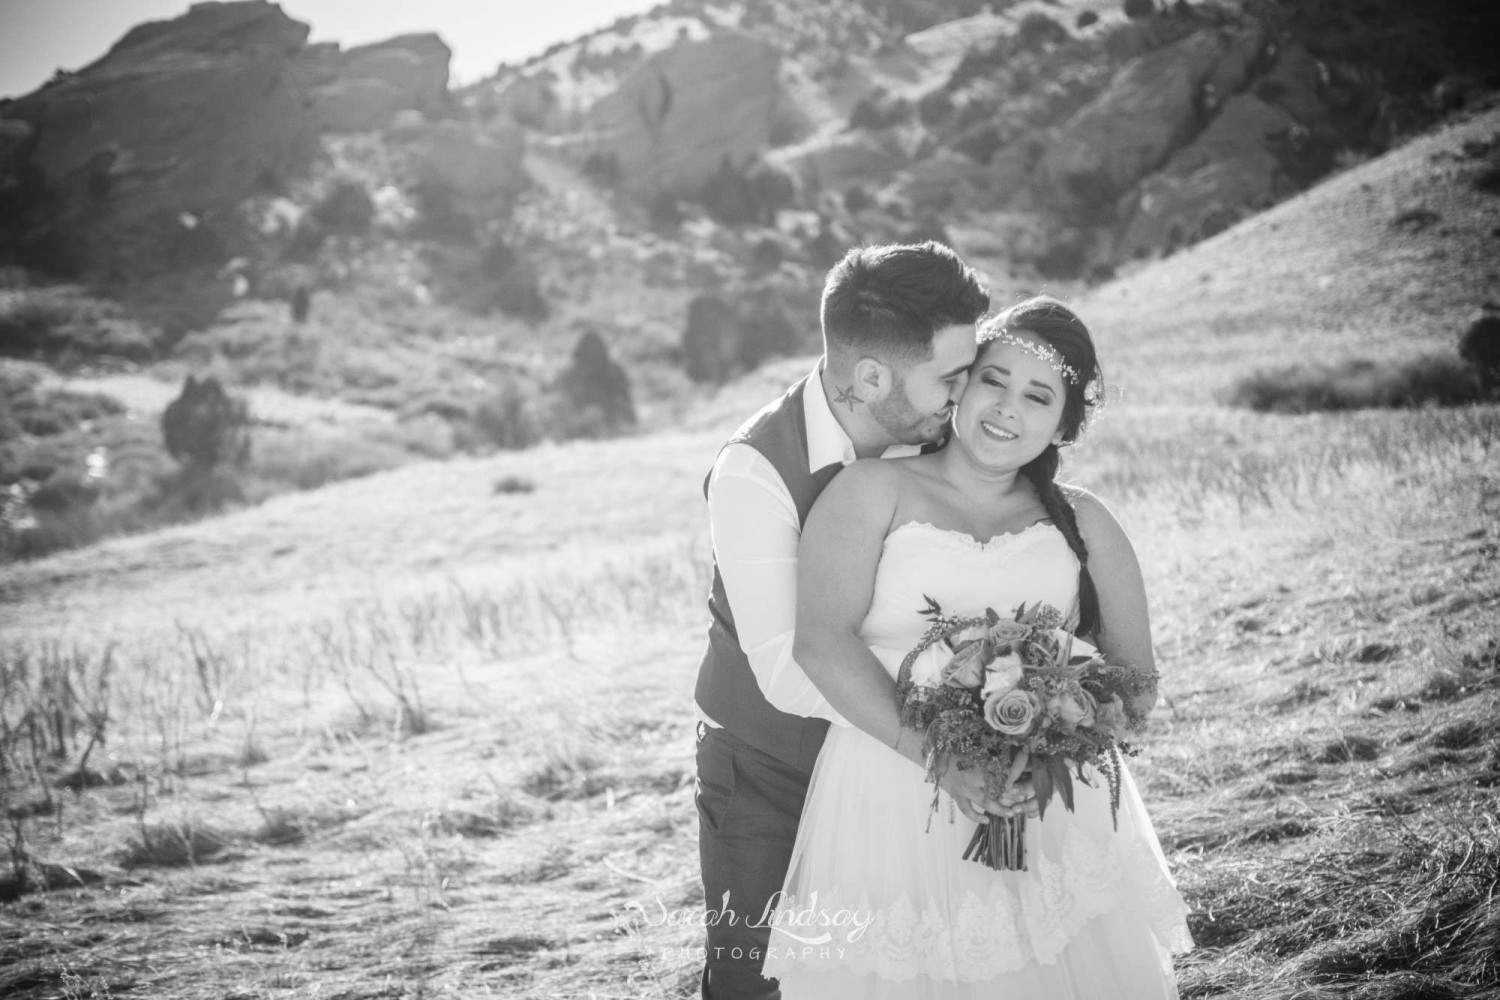 WM-styled-shoot-red-rocks-colorado-elopement-winter-sarah-lindsay-photography-1308-2000x1333